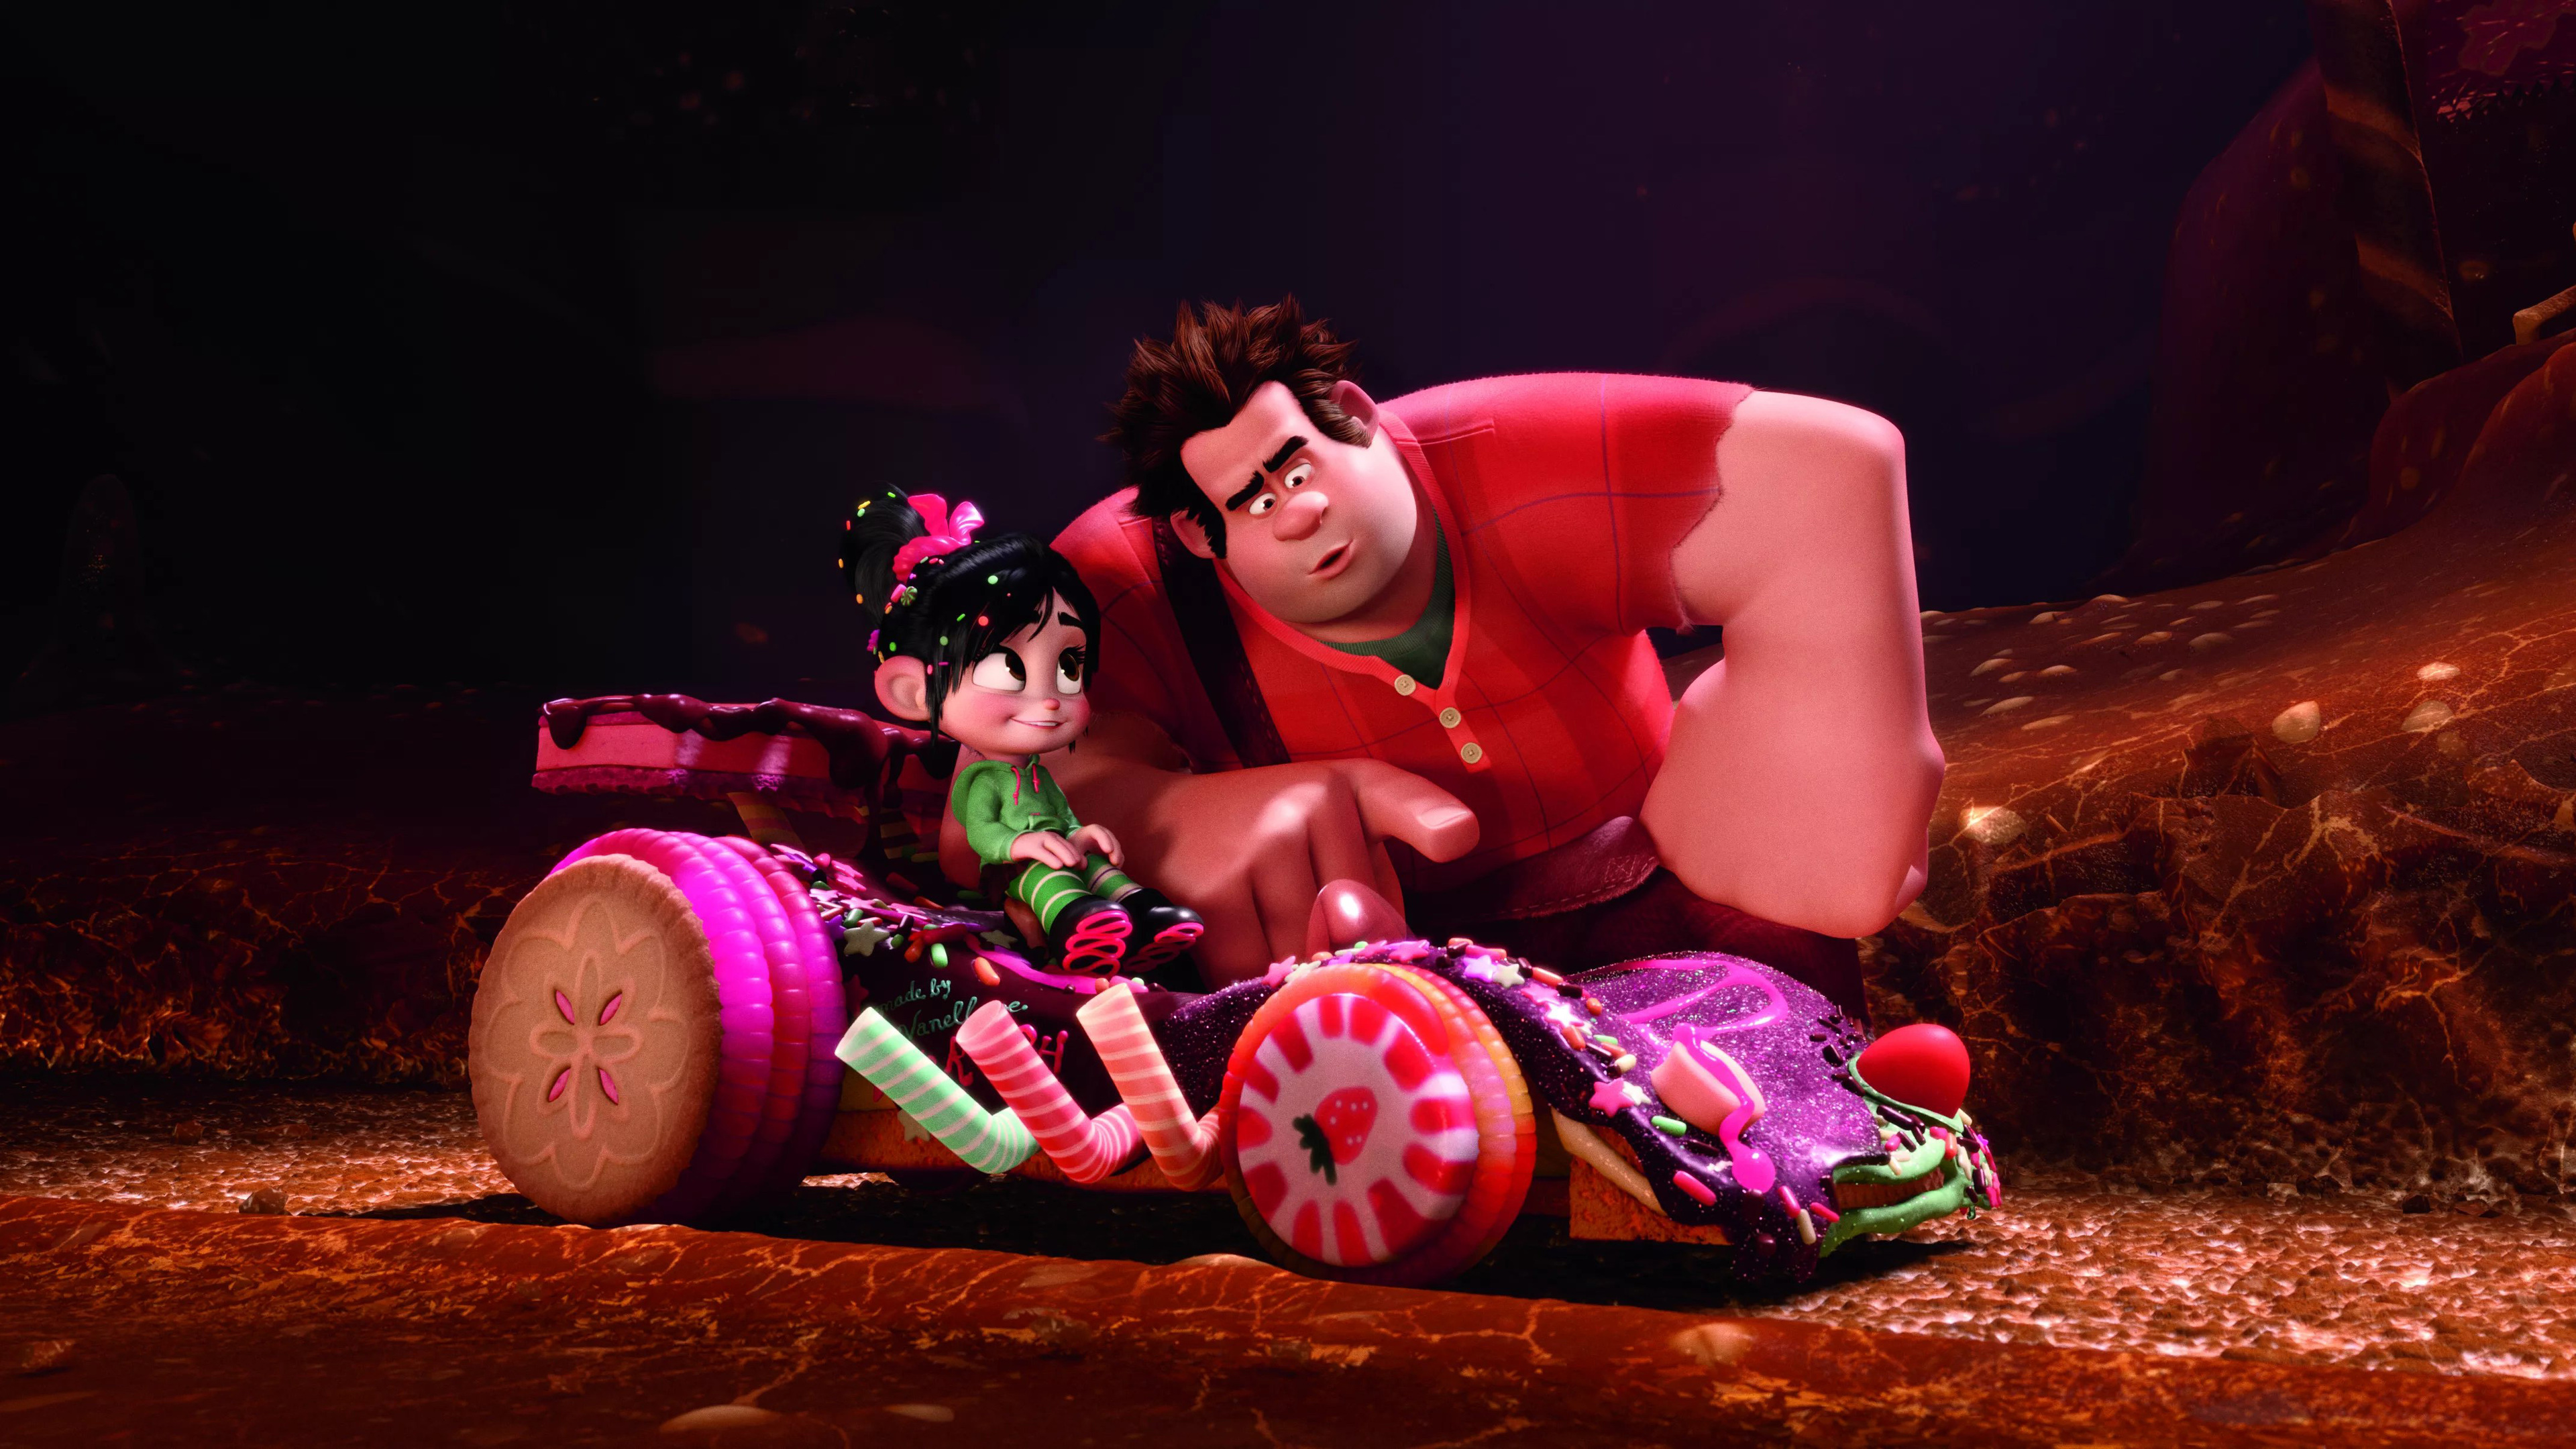 wreck it ralph 4k 1537644186 - Wreck It Ralph 4k - wreck it ralph 2 wallpapers, movies wallpapers, animated movies wallpapers, 4k-wallpapers, 2018-movies-wallpapers